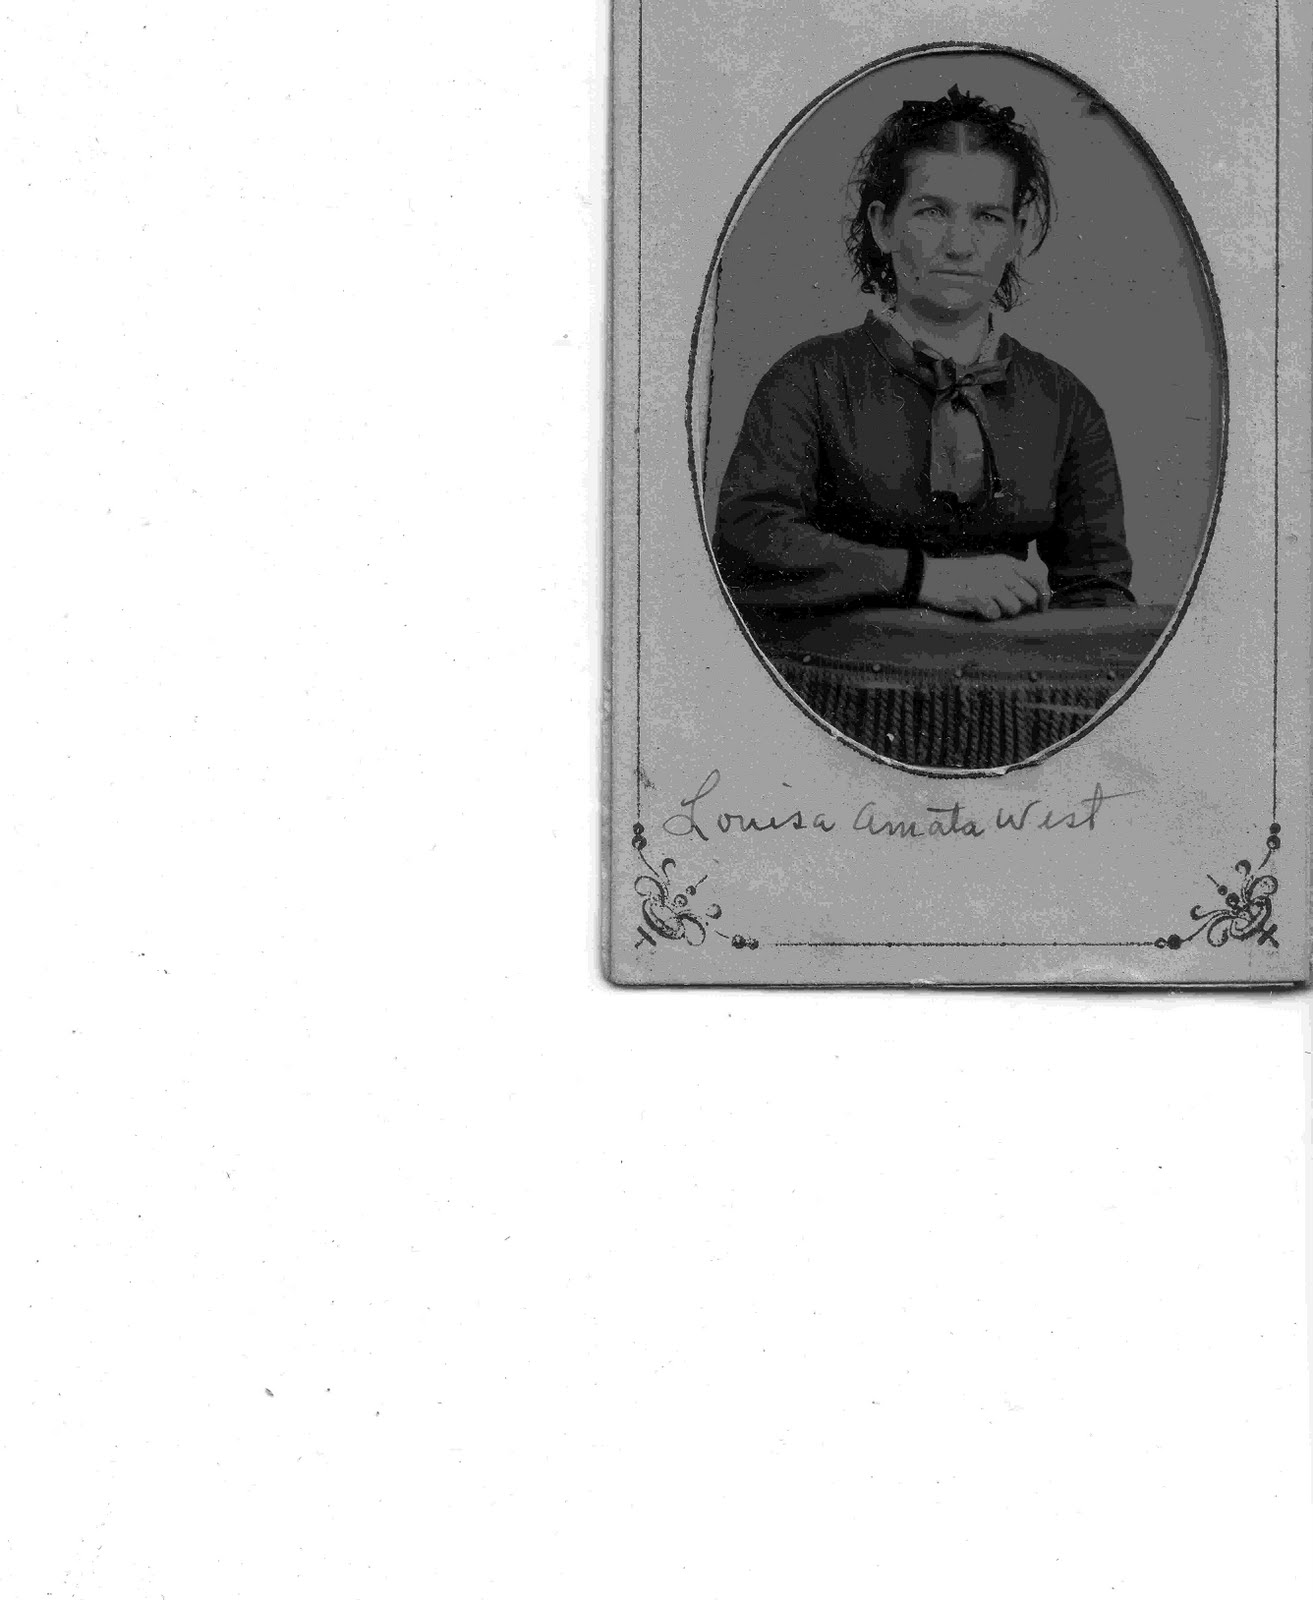 jonathan phelps west  and 1880